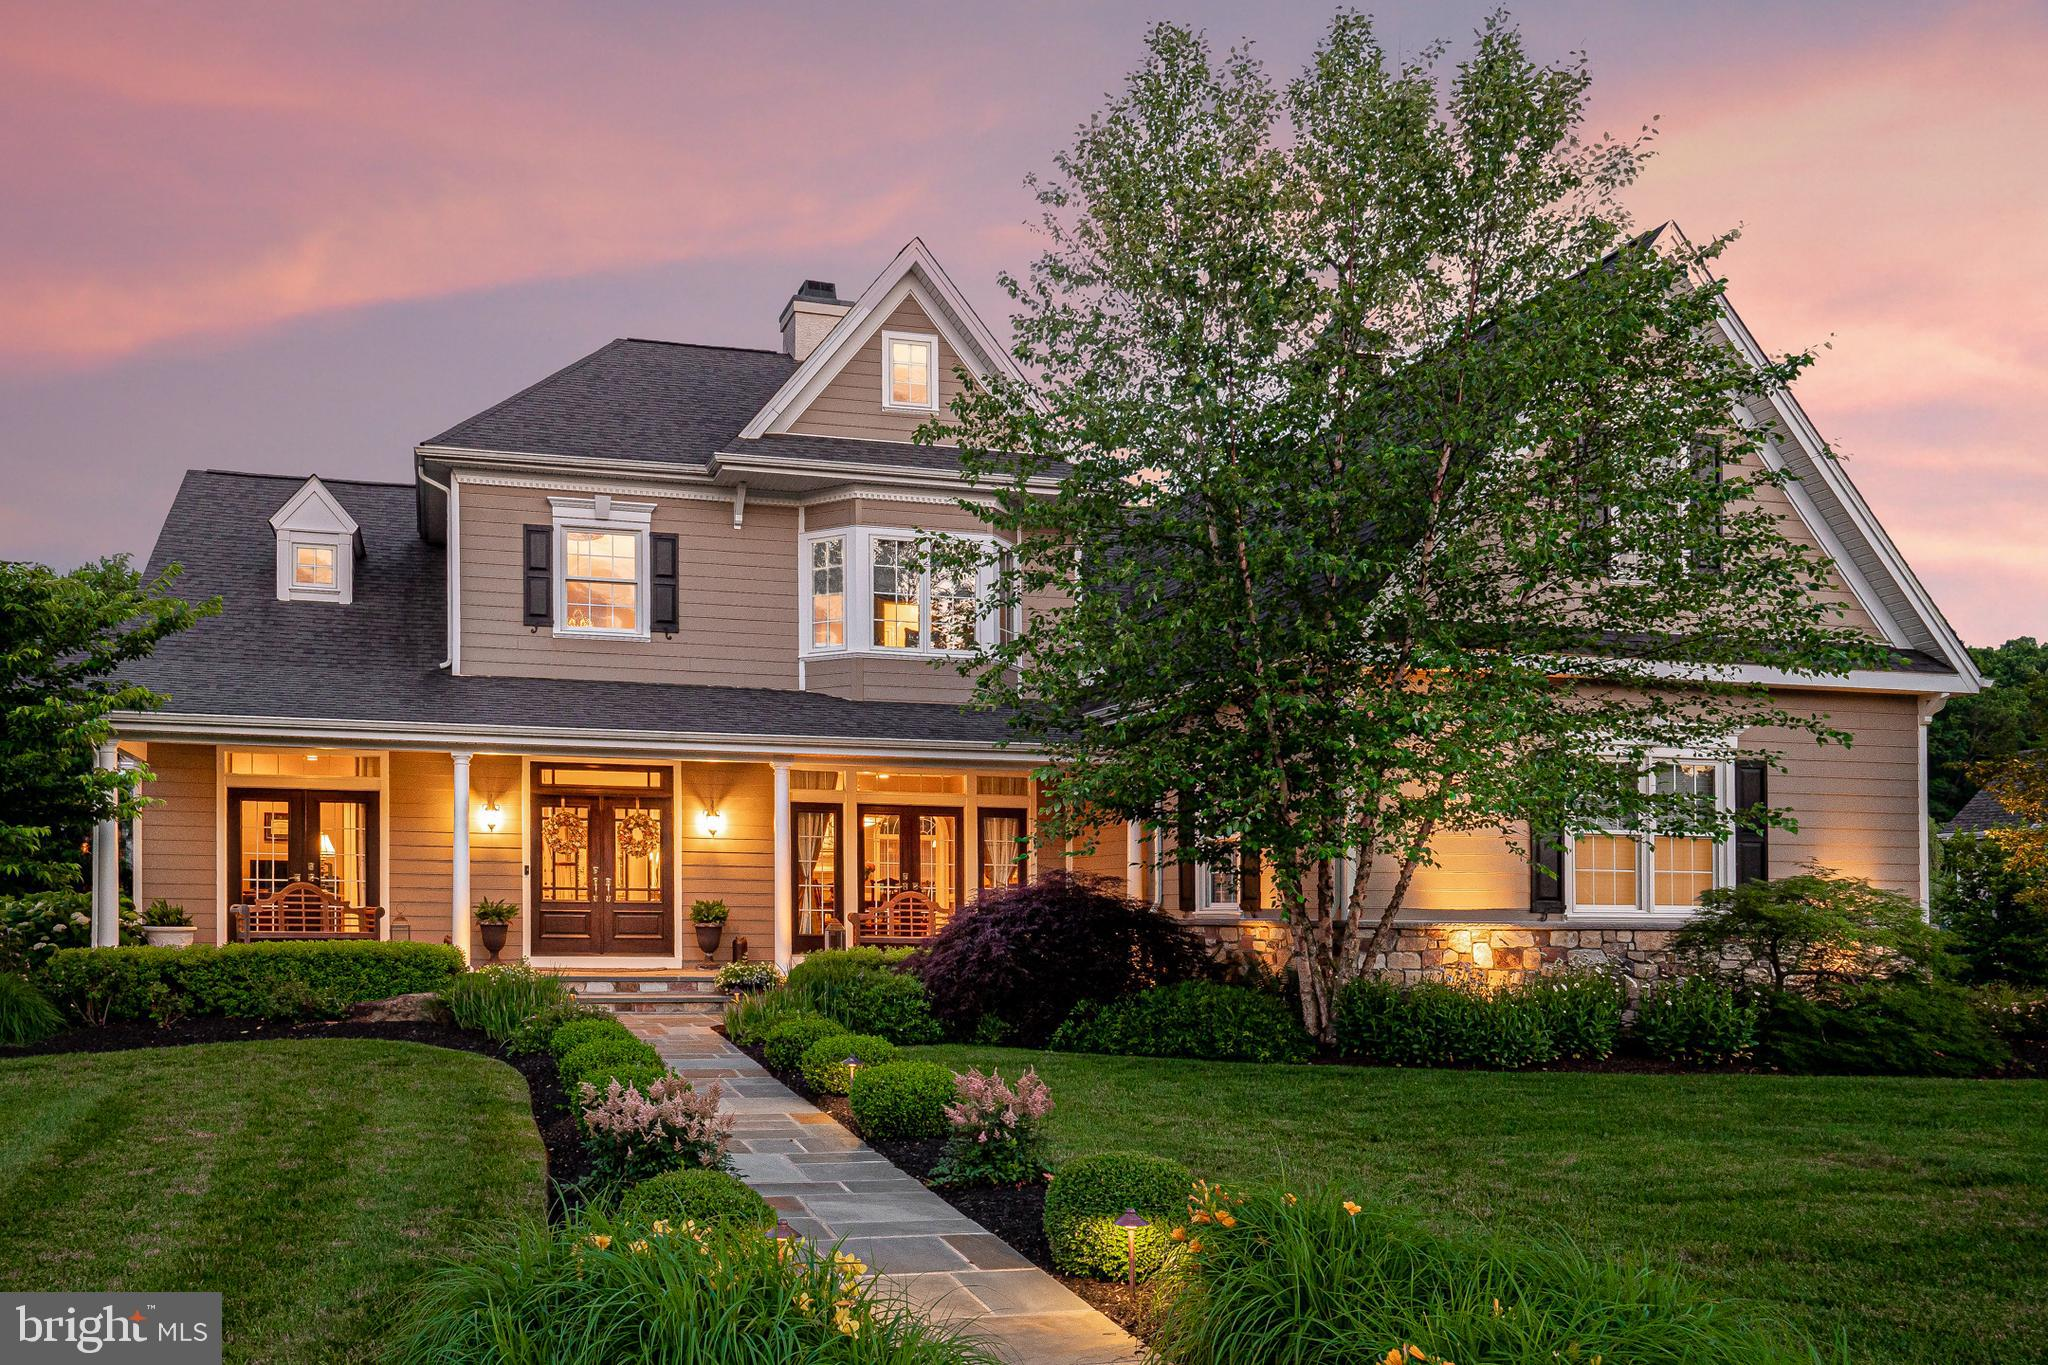 With an outdoor oasis including a pool and covered patio, a basement with custom bar and wine cellar and an open concept floor plan with a strategic flow for entertaining, 304 Spring Meadow Drive is more than just a home, it is a true retreat. No expense was spared in the crafting of this home, with over $475,000 in upgrades completed after the initial build. From a charming front porch, enter through double doors into a two-foyer with detailed millwork. Throughout the first floor are 10' ceilings and site finished hardwood floors. The sizable dining room is anchored by french doors to the porch on one side and a fireplace with a marble surround on the other. A butlers pantry highlighted by a stunning mirrored backsplash leads to the kitchen. A gourmet kitchen with 6-burner cooktop with griddle, a marble backsplash with mosaic and an oversized island open to the breakfast area and great room. Flooded with natural light this space is perfectly spaced and designed. Off the breakfast room is a composite deck with gas piped for grilling and has to the patio. The study (or formal living room if preferred), a powder room and the master suite are situated on the other side of the central hall. This main level master offers a spacious walk-in closet with custom closets and a sumptuous master bathroom with a soaking tub, a marble shower and dual vanities. The laundry room is also conveniently located on the main floor. Upstairs, there is an open loft, a bedroom with ensuite bath and two other bedrooms one which connects to the hall bath. In the lower level, a study or exercise room and a full bath takes up just a portion of the nearly 2000 sq ft of finished space. There is plenty of room for the pool table, gaming space and a media area but the focal point is the custom wet bar with a beverage center, icemaker and wine cellar. French doors lead to the covered porch overlooking the flat back yard and impressive pool with a sundeck, waterfall, water features and spa. Situated 